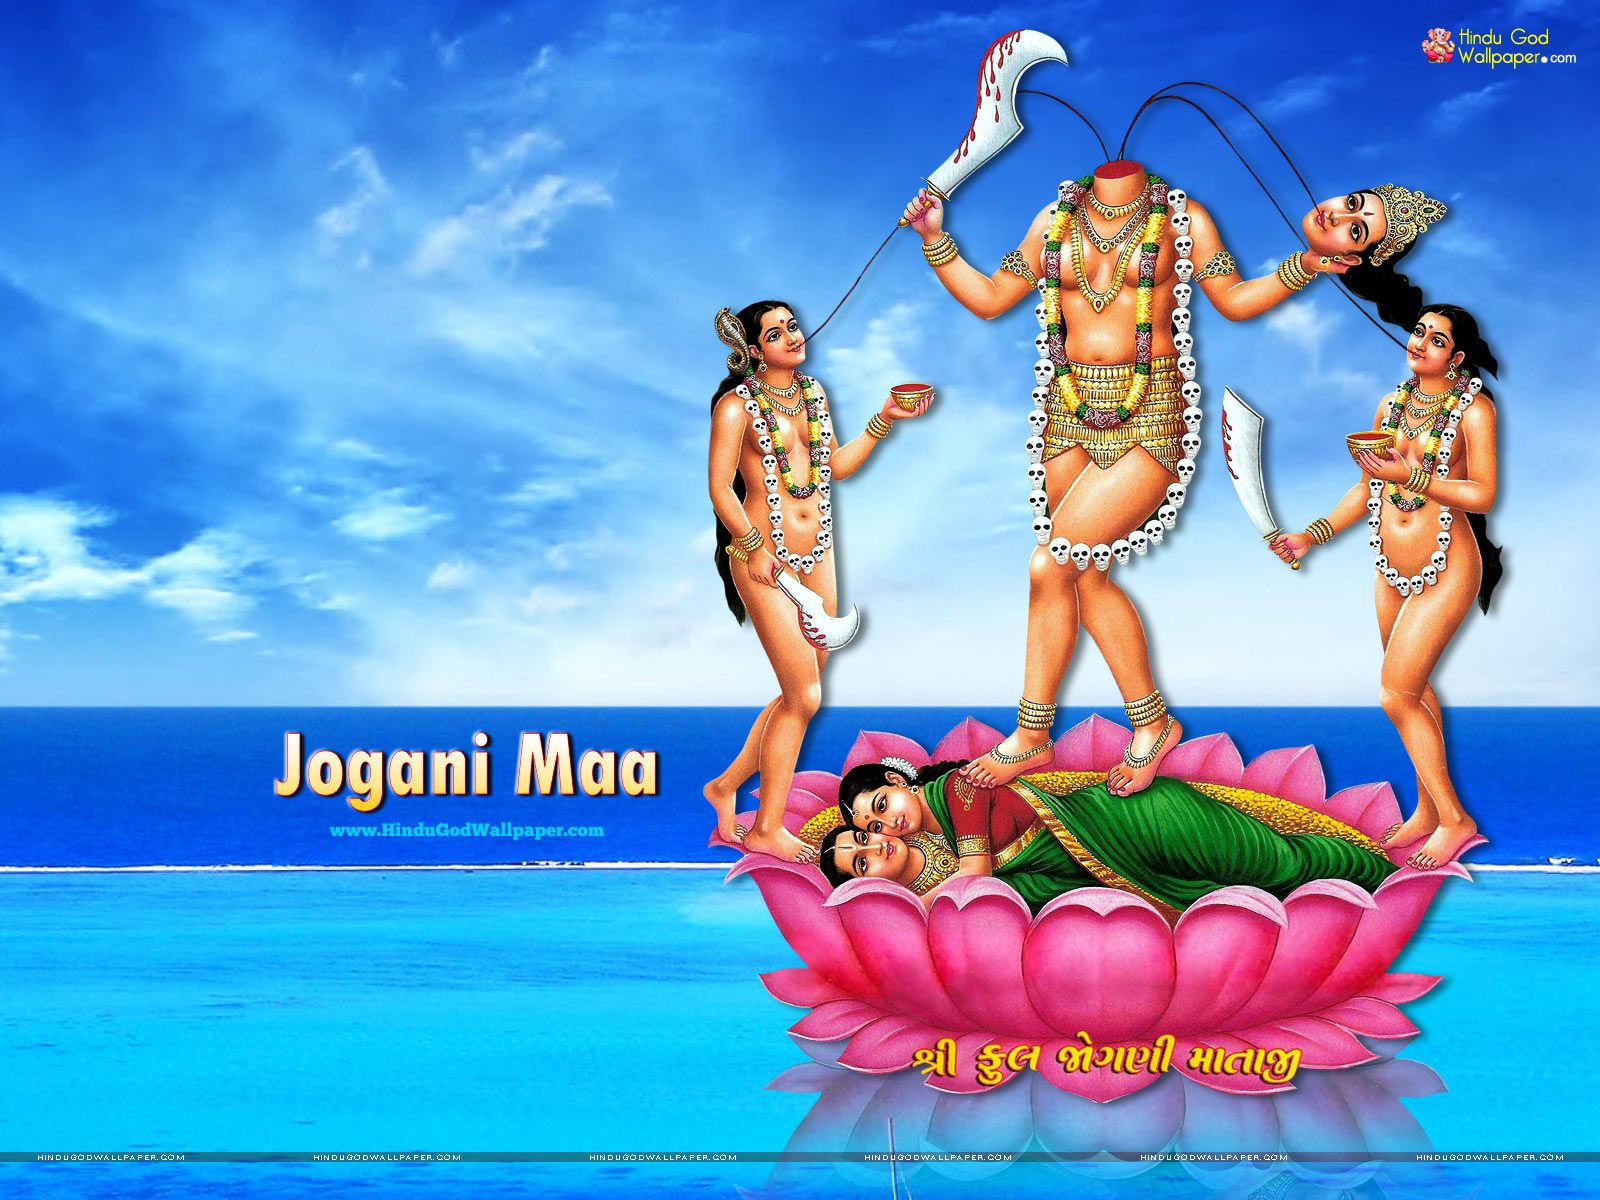 Jogani Maa Wallpapers and Photos Free Download | Goddesses in 2019